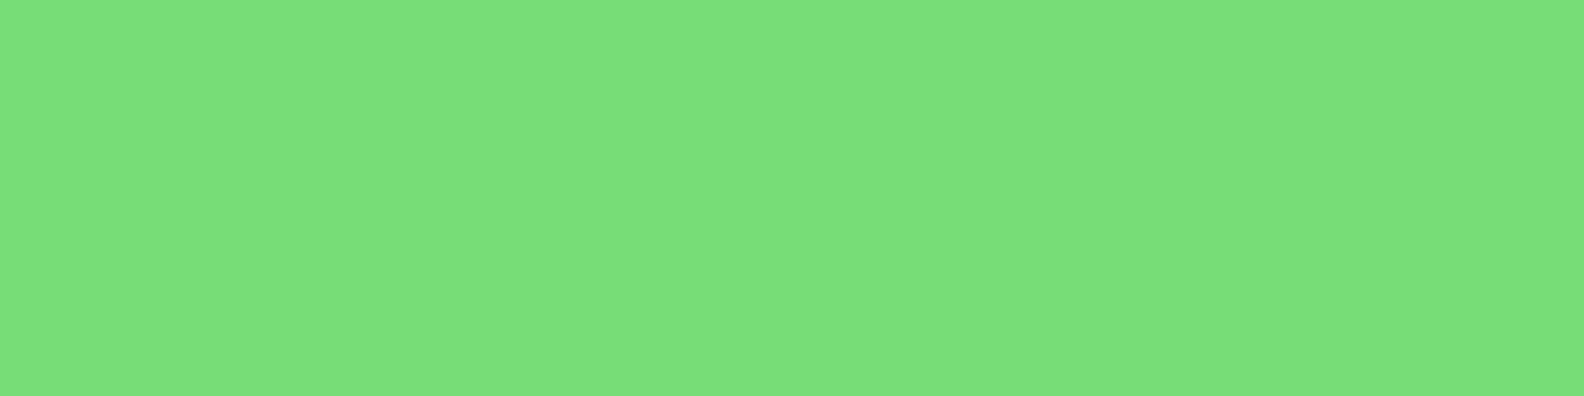 1584x396 Pastel Green Solid Color Background